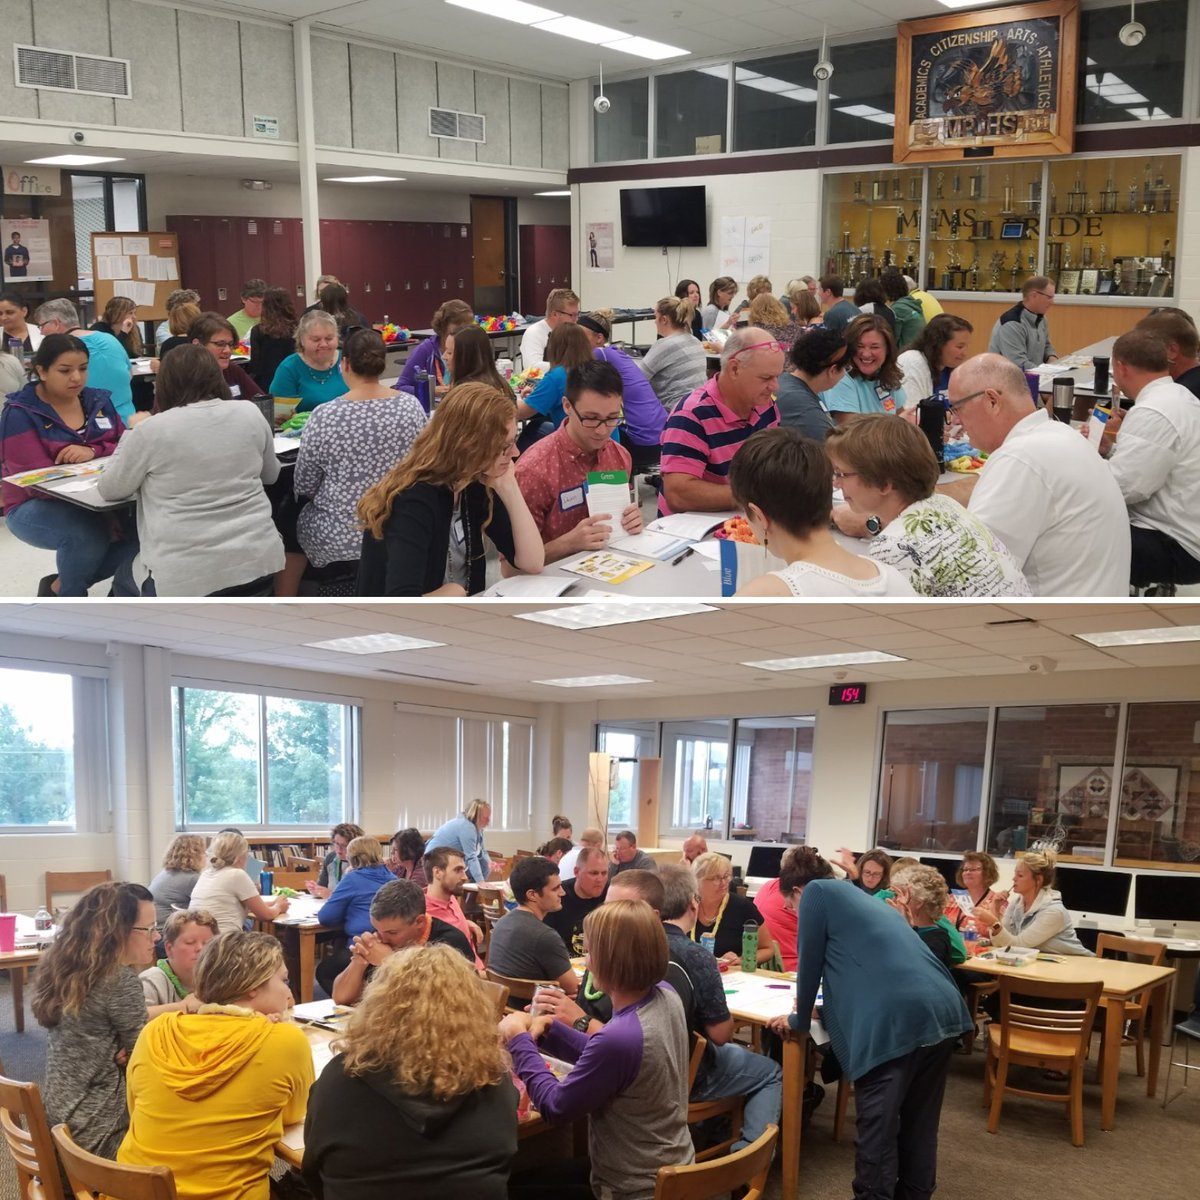 It was a great day working with #mphawks Middle School teachers and High School teachers and sharing our #real colors! <br>http://pic.twitter.com/y3xG5eT4ri